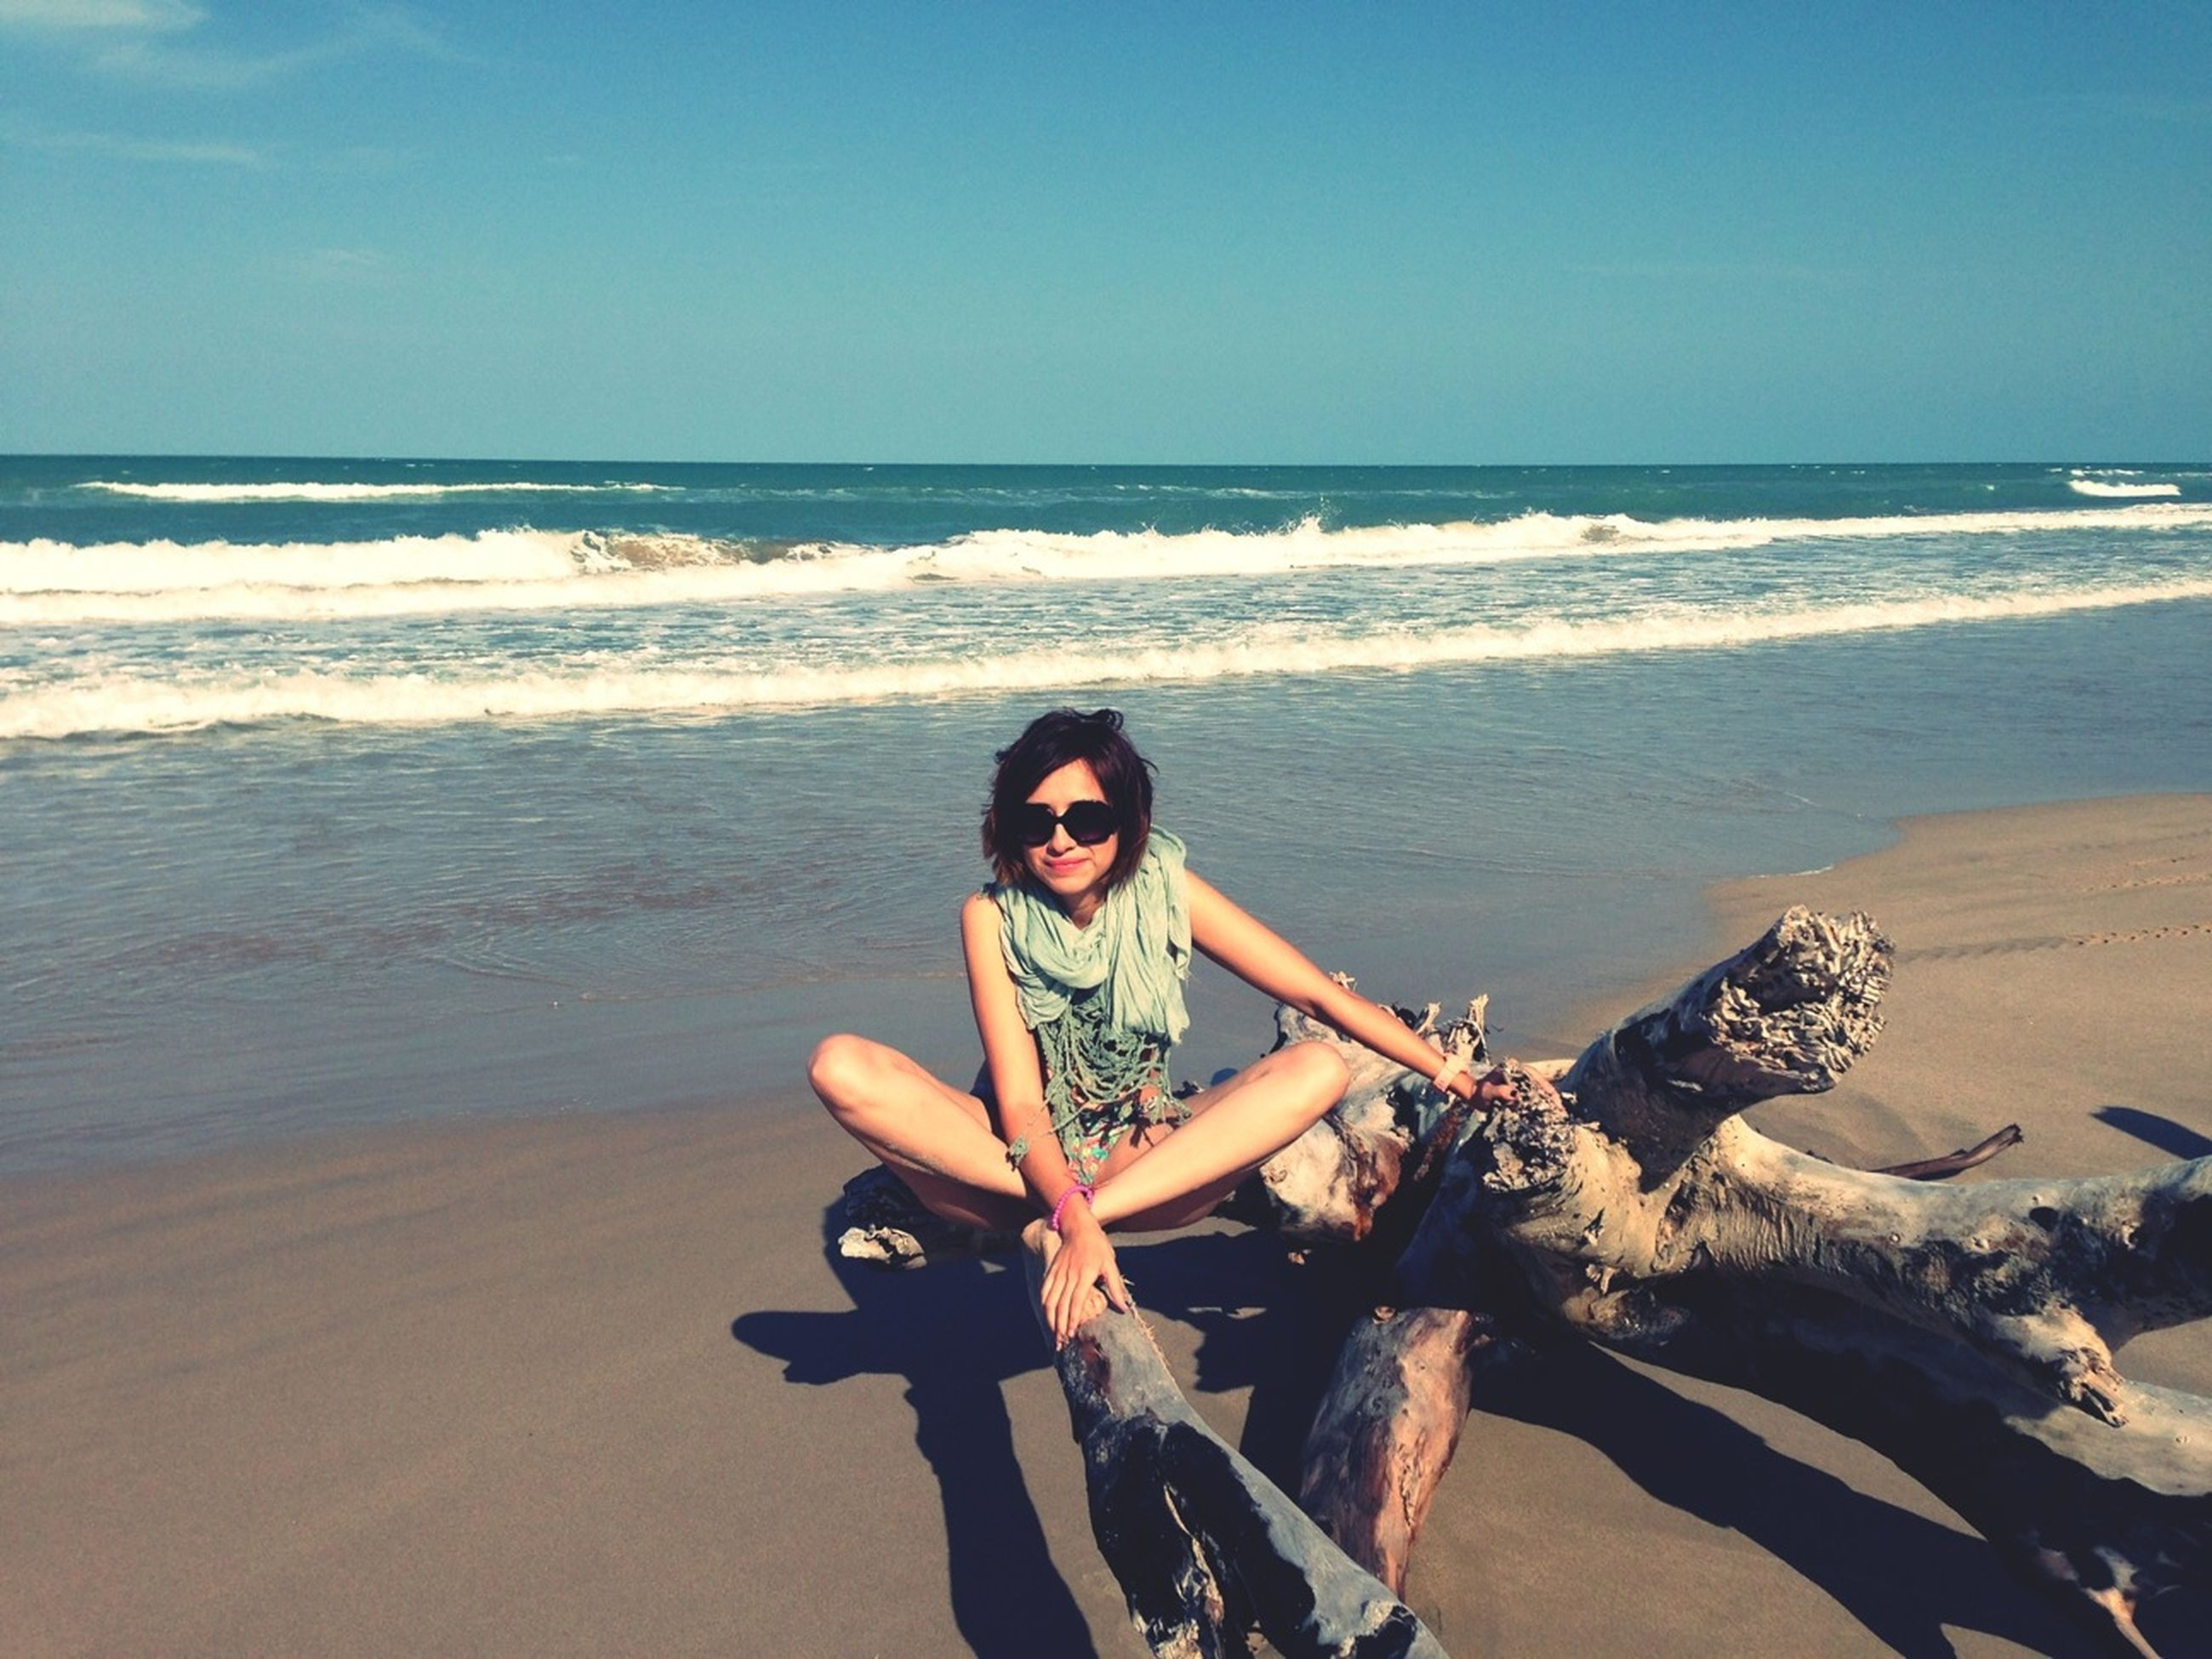 sea, beach, horizon over water, young adult, water, lifestyles, leisure activity, shore, person, young women, sand, clear sky, vacations, looking at camera, sunglasses, portrait, casual clothing, sitting